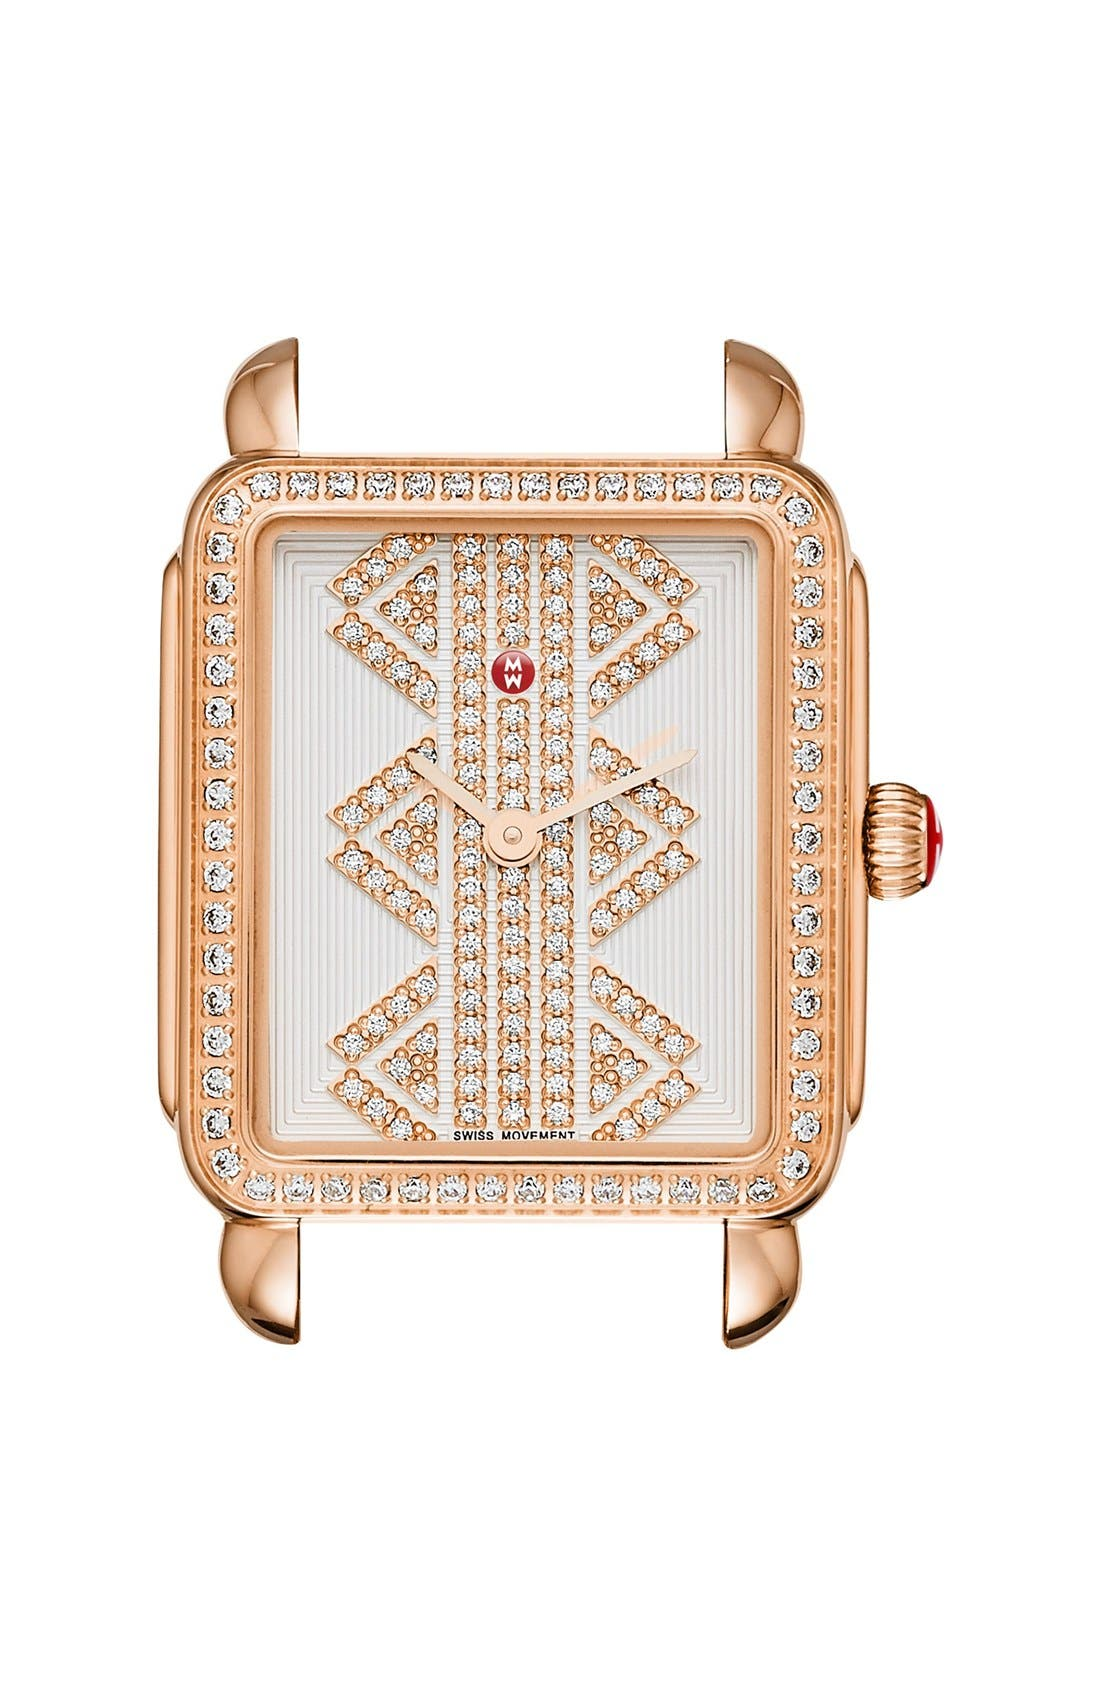 MICHELE Deco II Mid Diamond Dial Watch Case,